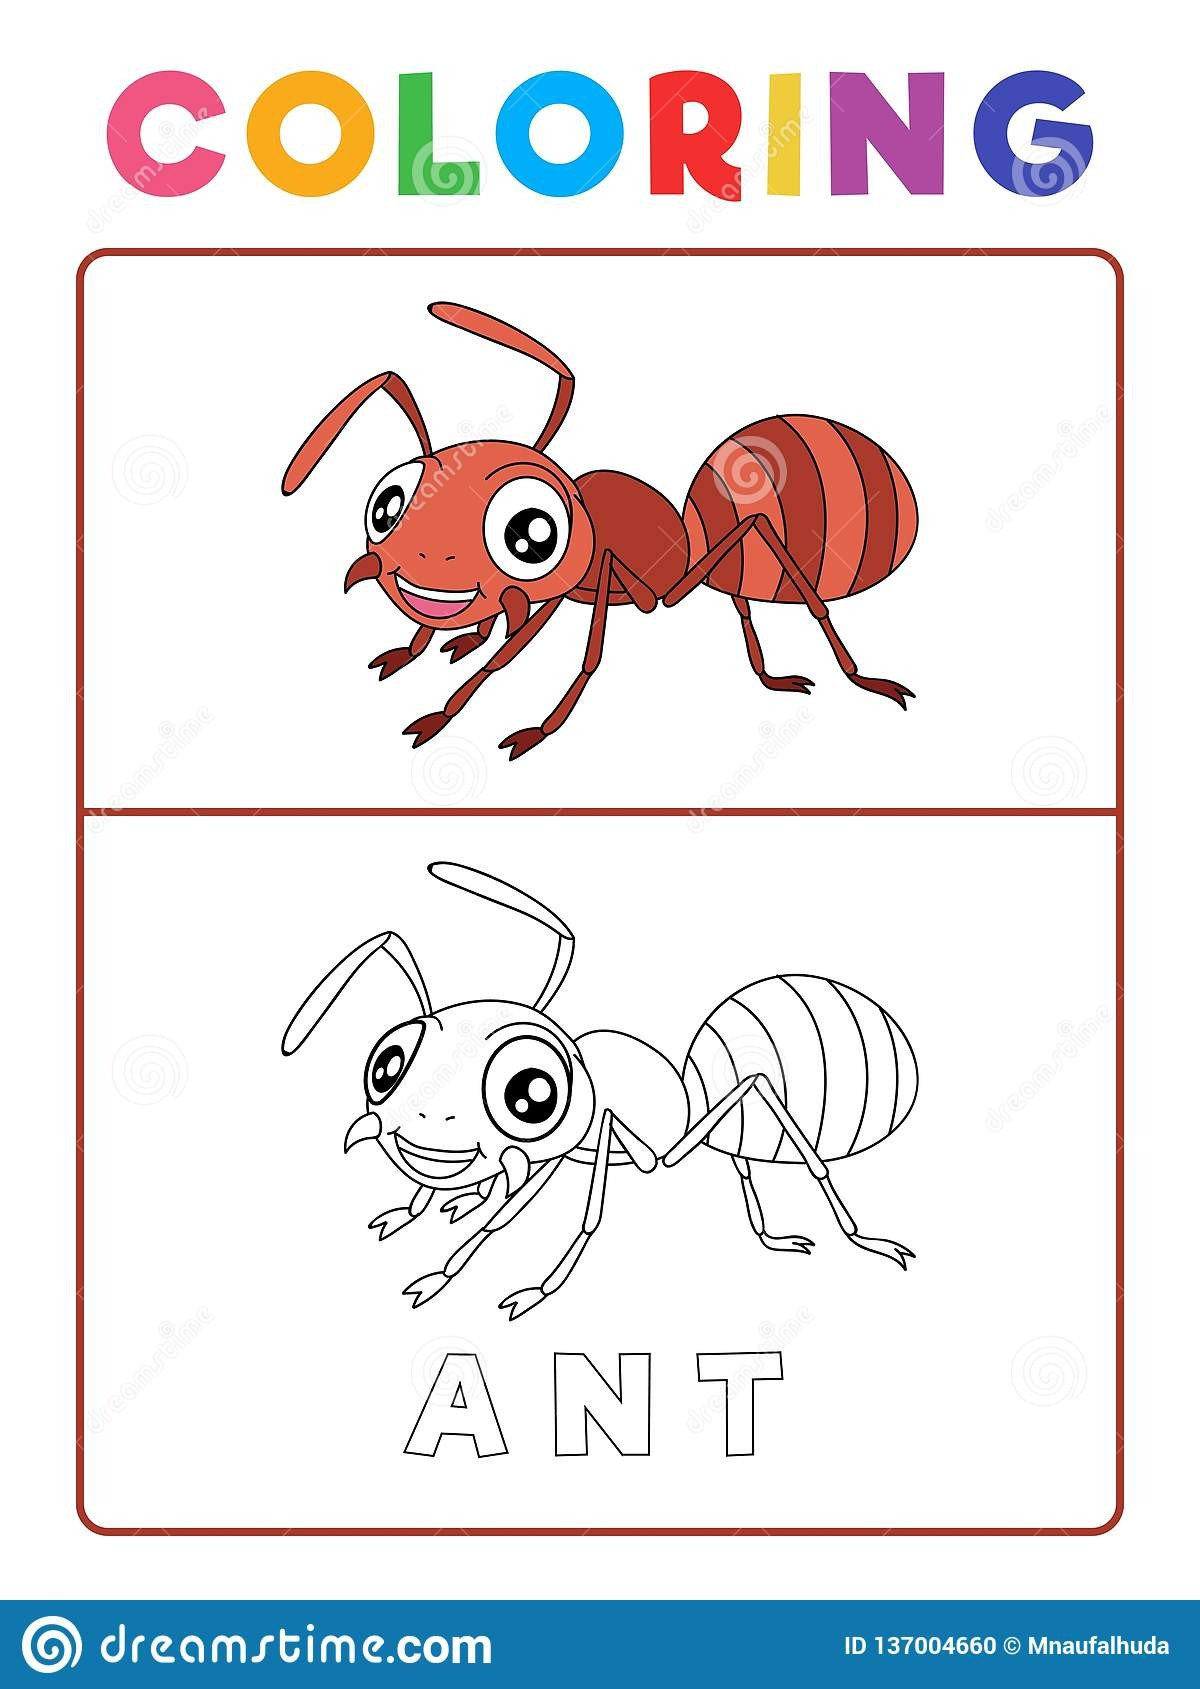 funny ant insect animal coloring book example preschool worksheet practicing fine colors recognition skill vector funny